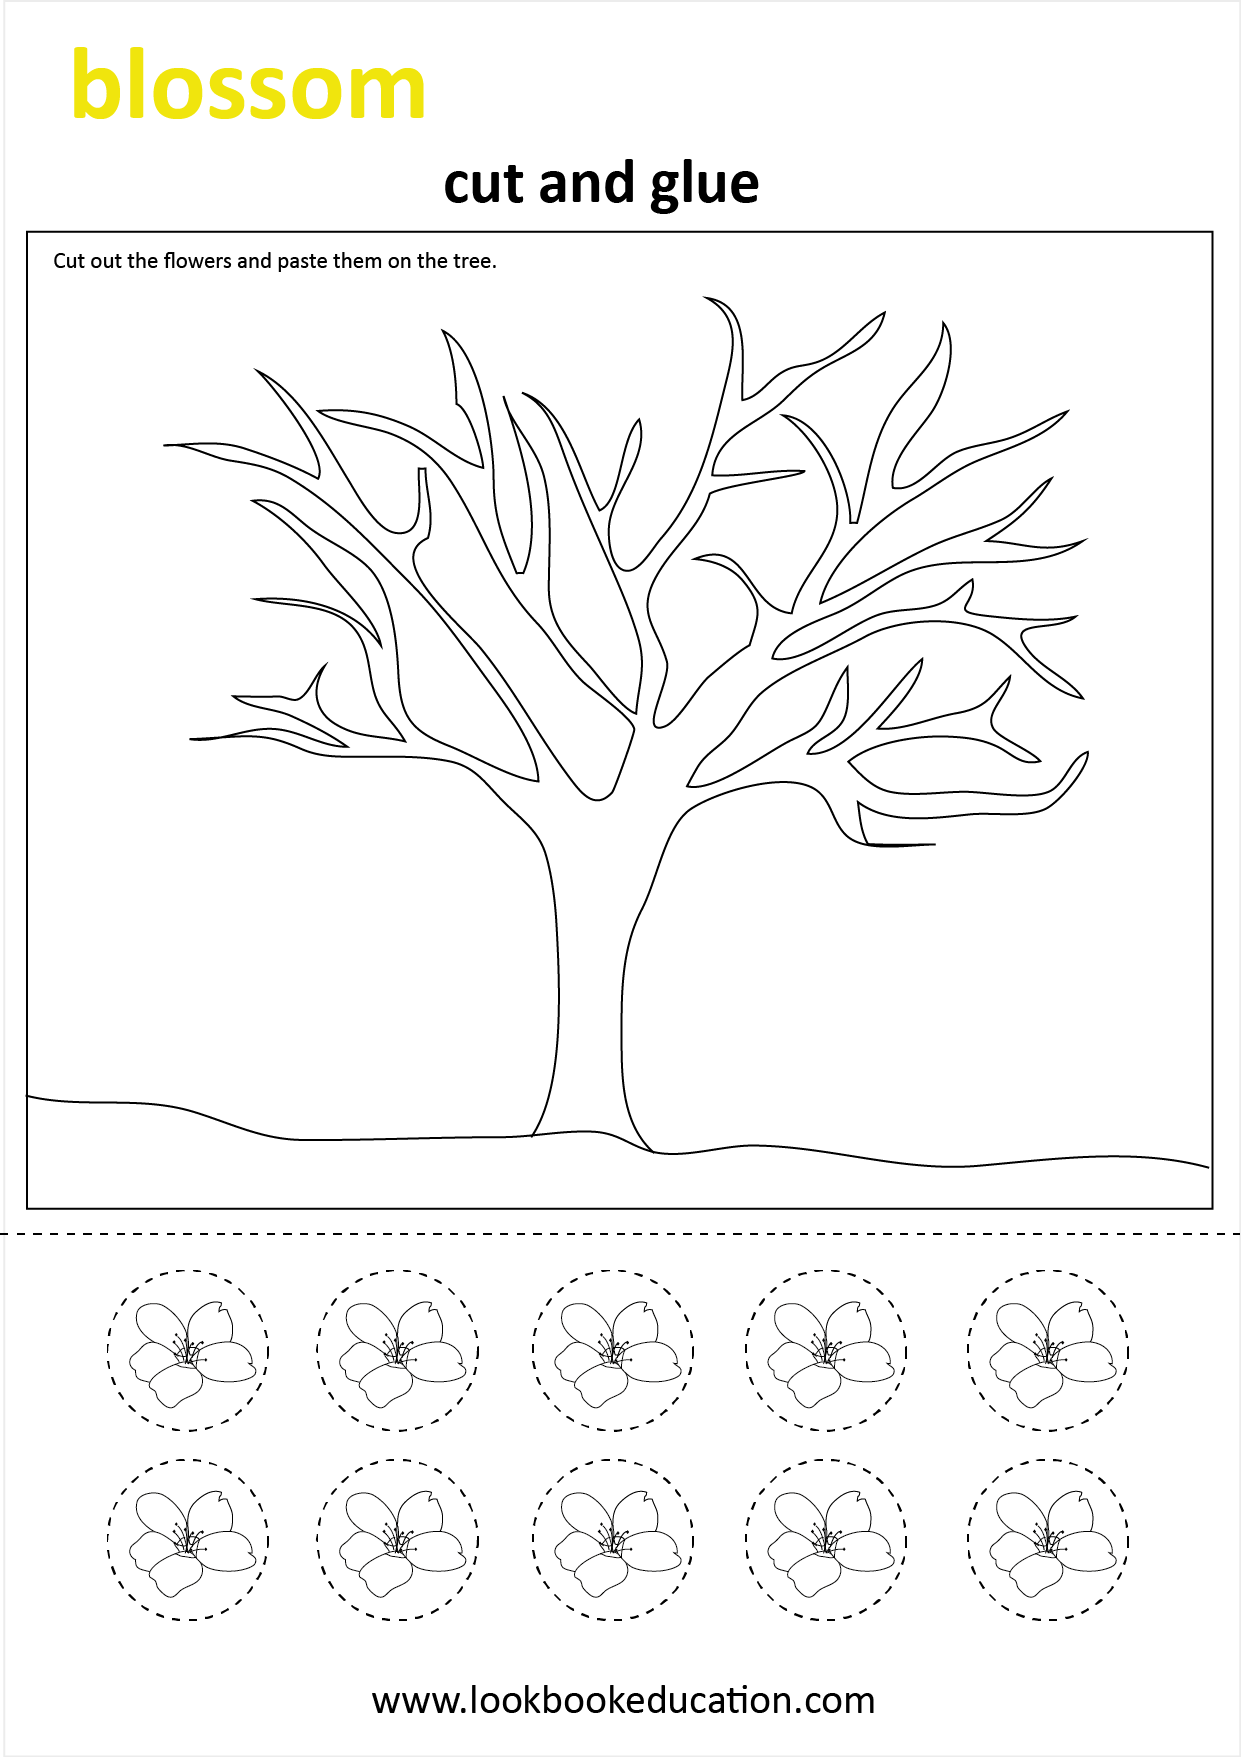 Worksheet Spring Blossom